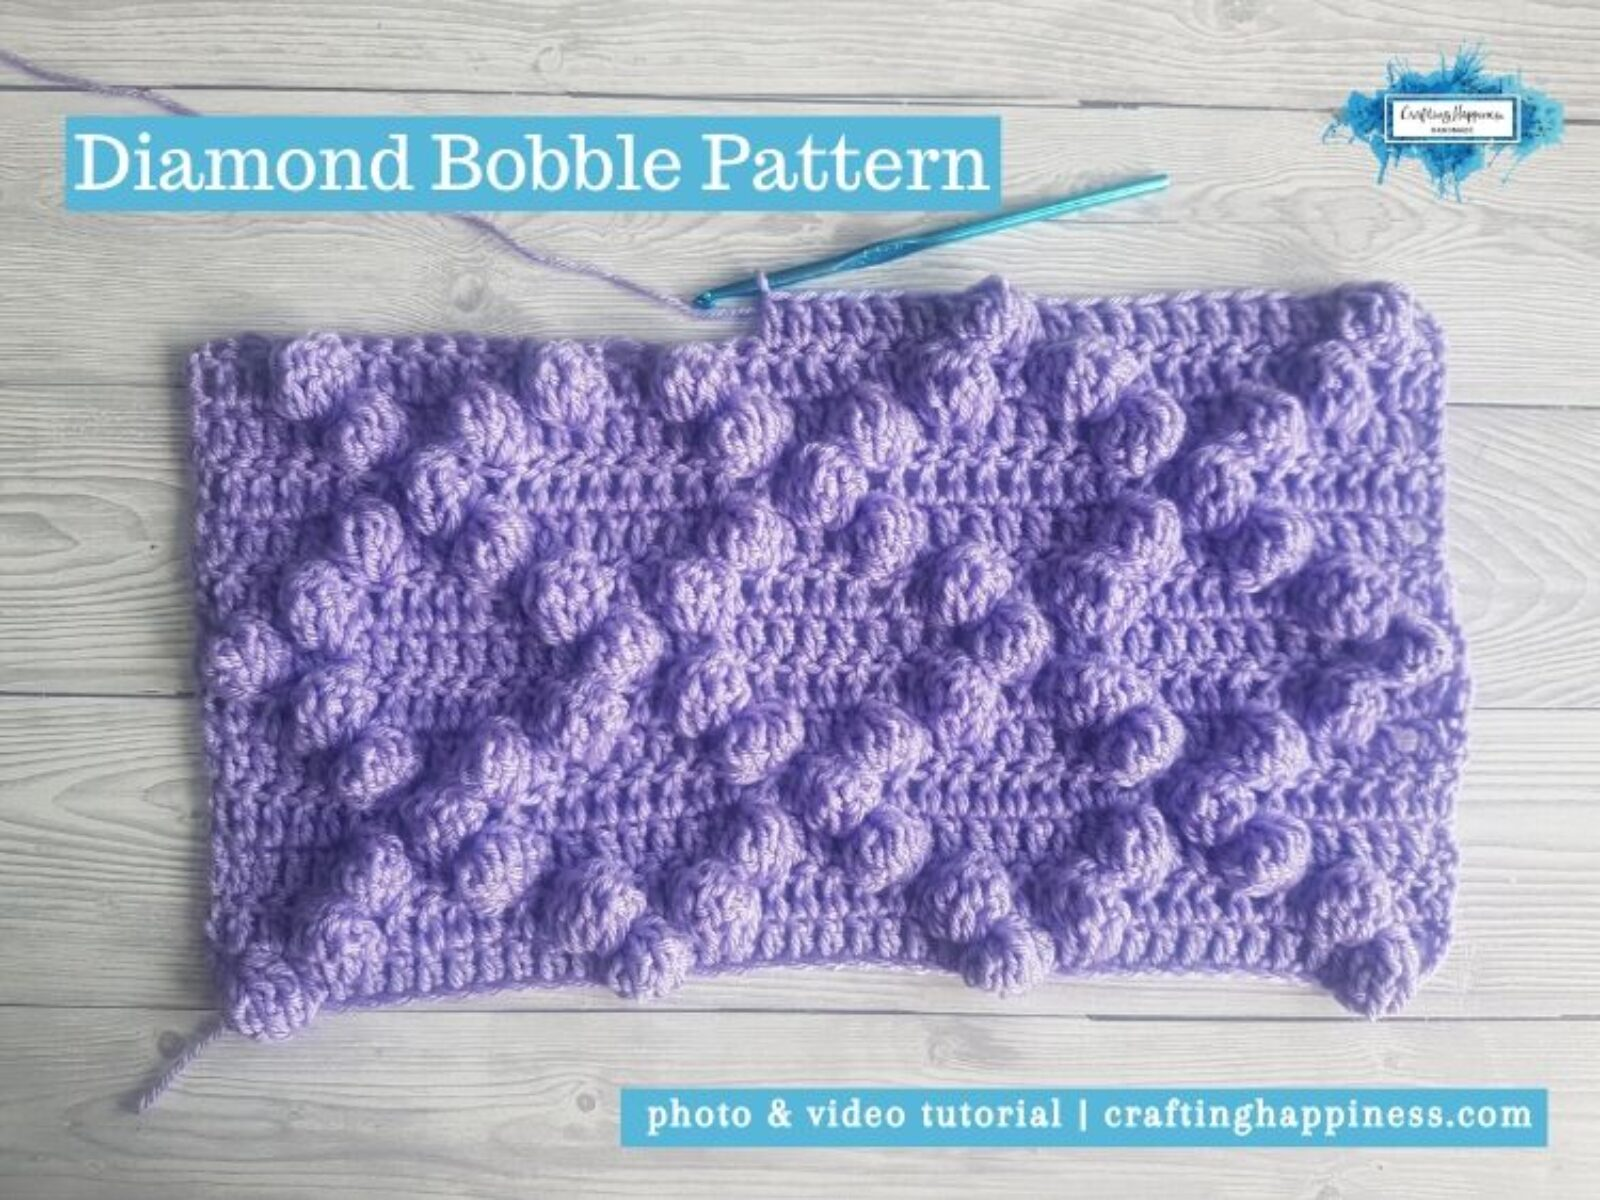 Diamond Bobble Pattern by Crafting Happiness FACEBOOK POSTER